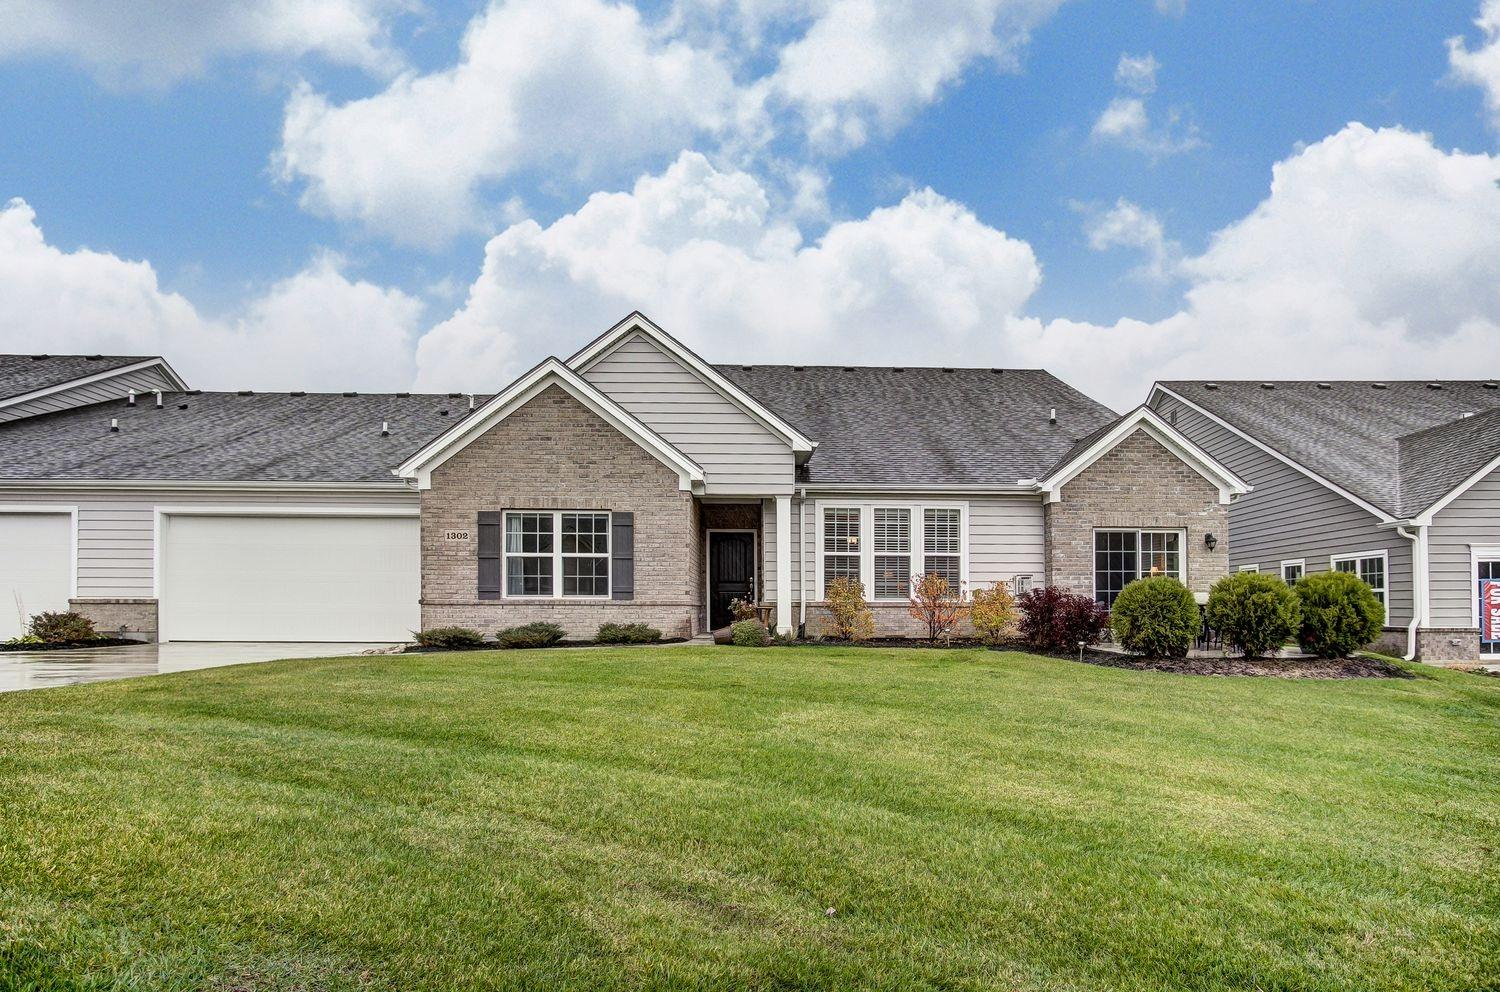 Property for sale at 1302 Bourdeaux Way, Clearcreek Twp.,  OH 45458